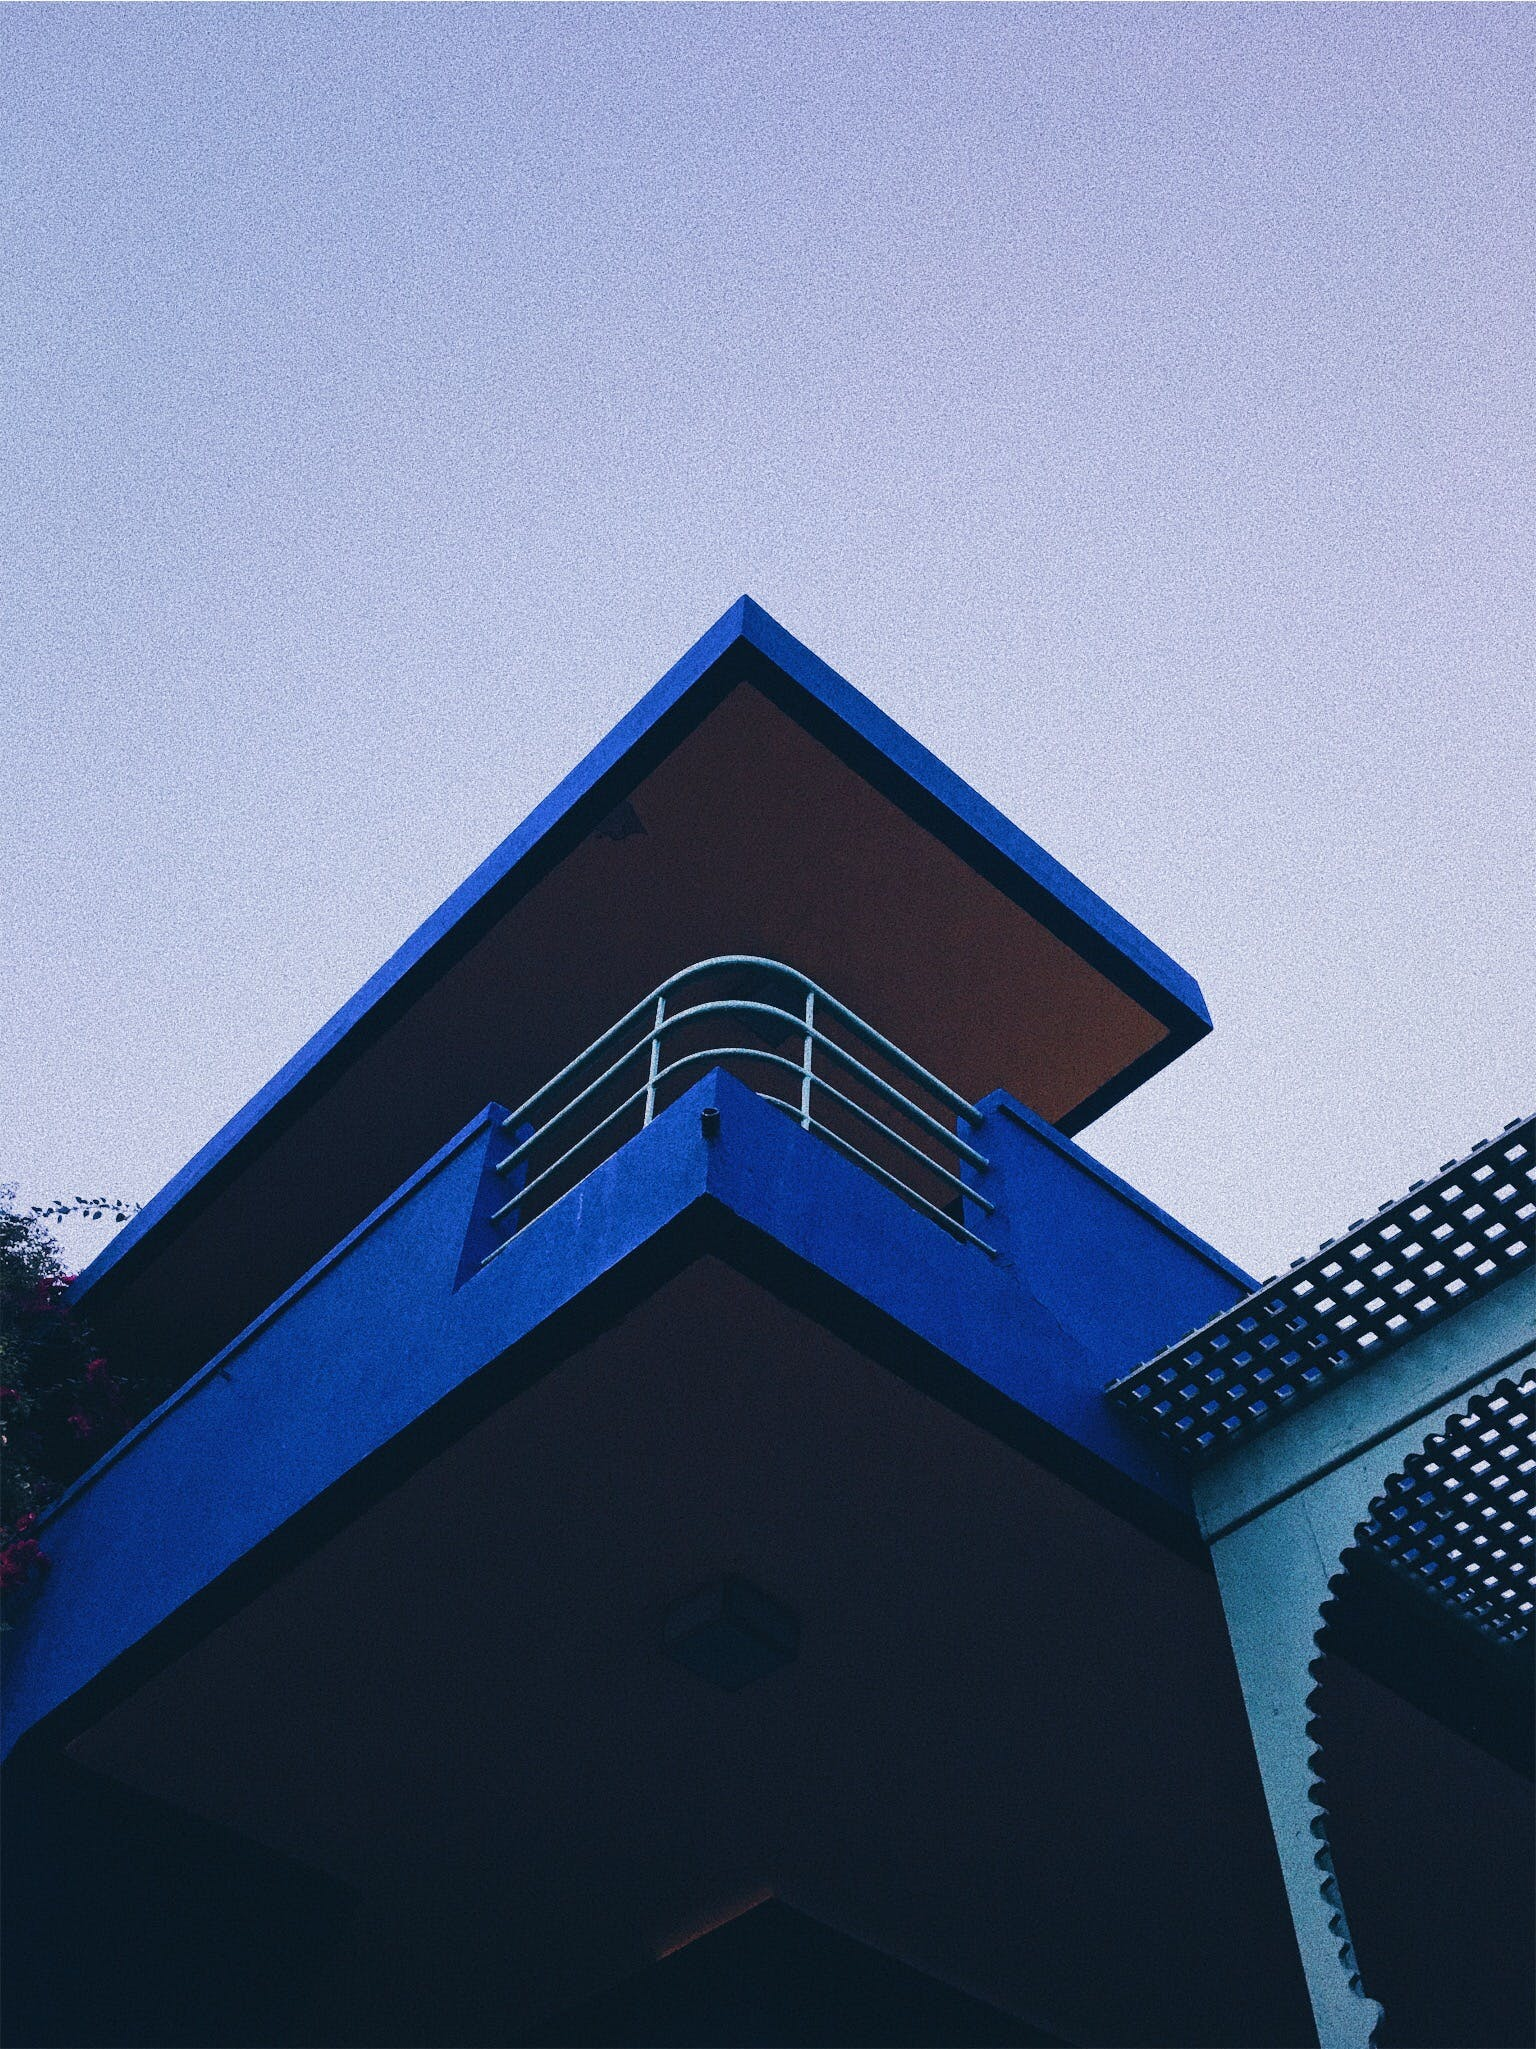 Low Angle Photography of Blue Concrete Building ]